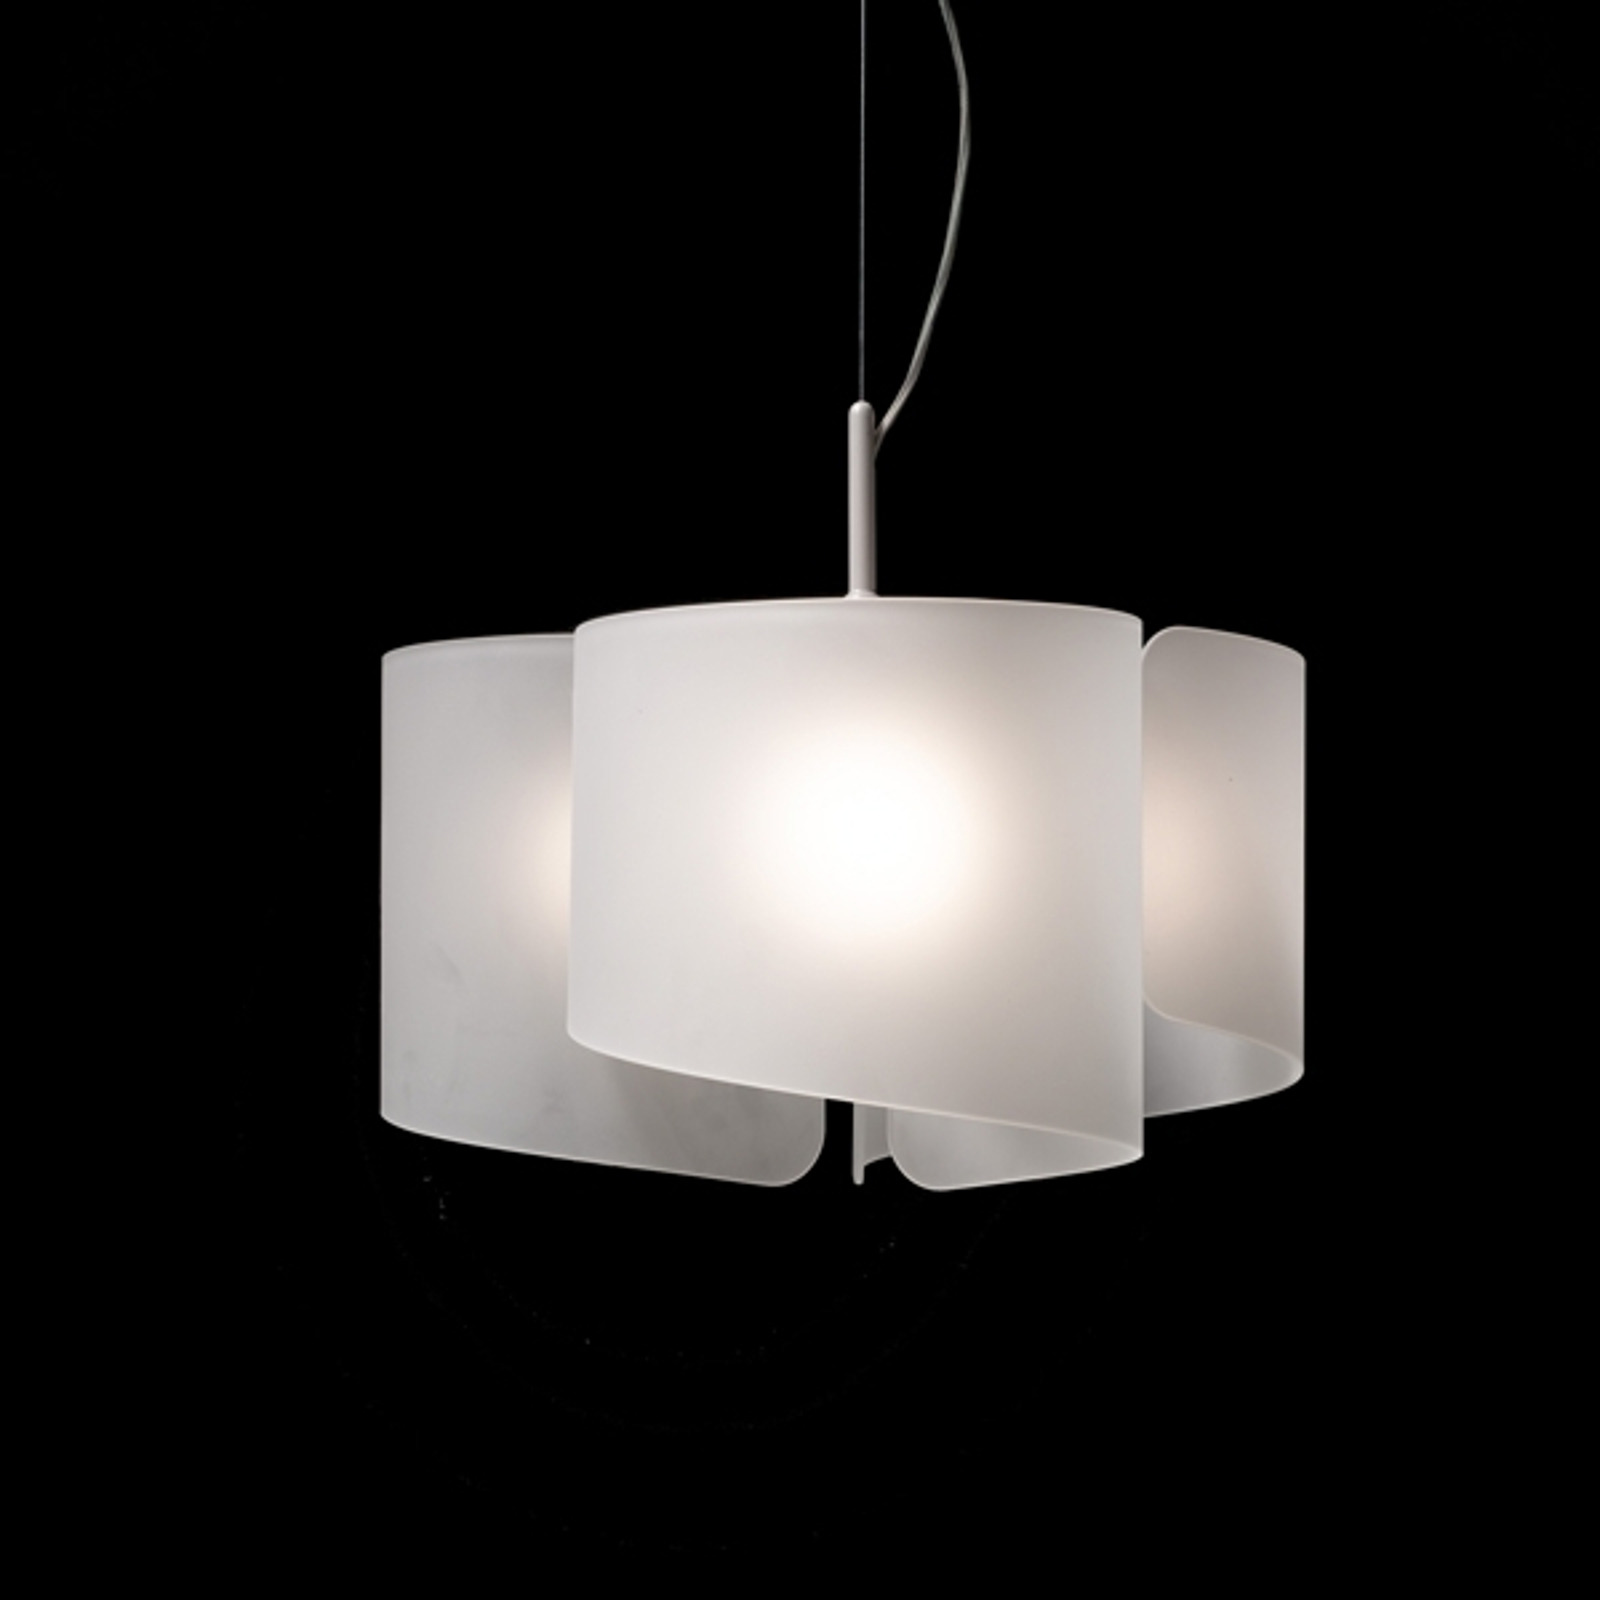 Superbe suspension à 3 lampes Papiro satin